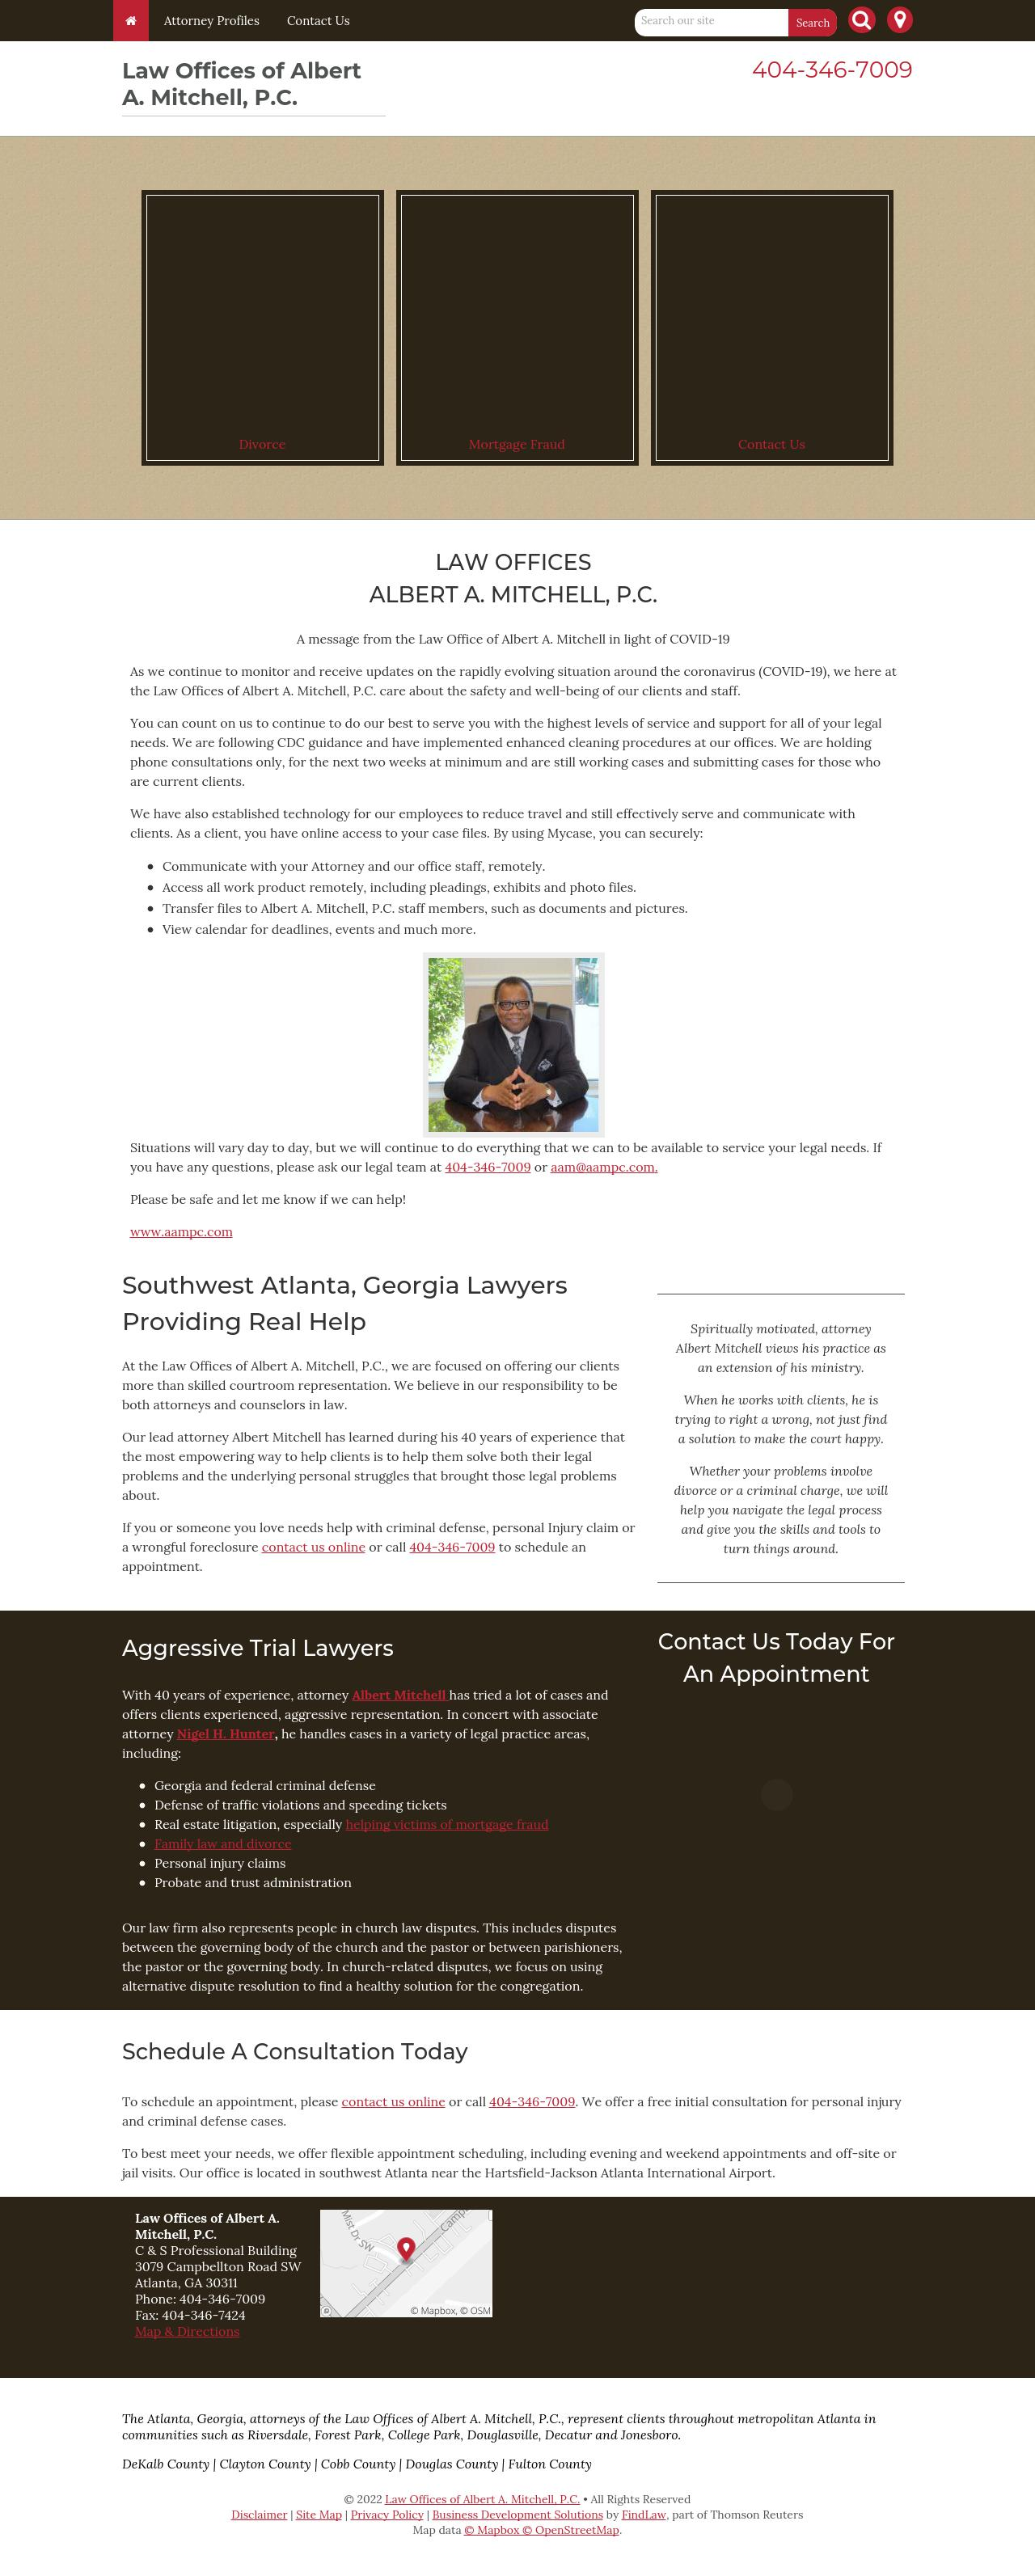 Law Offices of Albert A. Mitchell, P.C. - Atlanta GA Lawyers